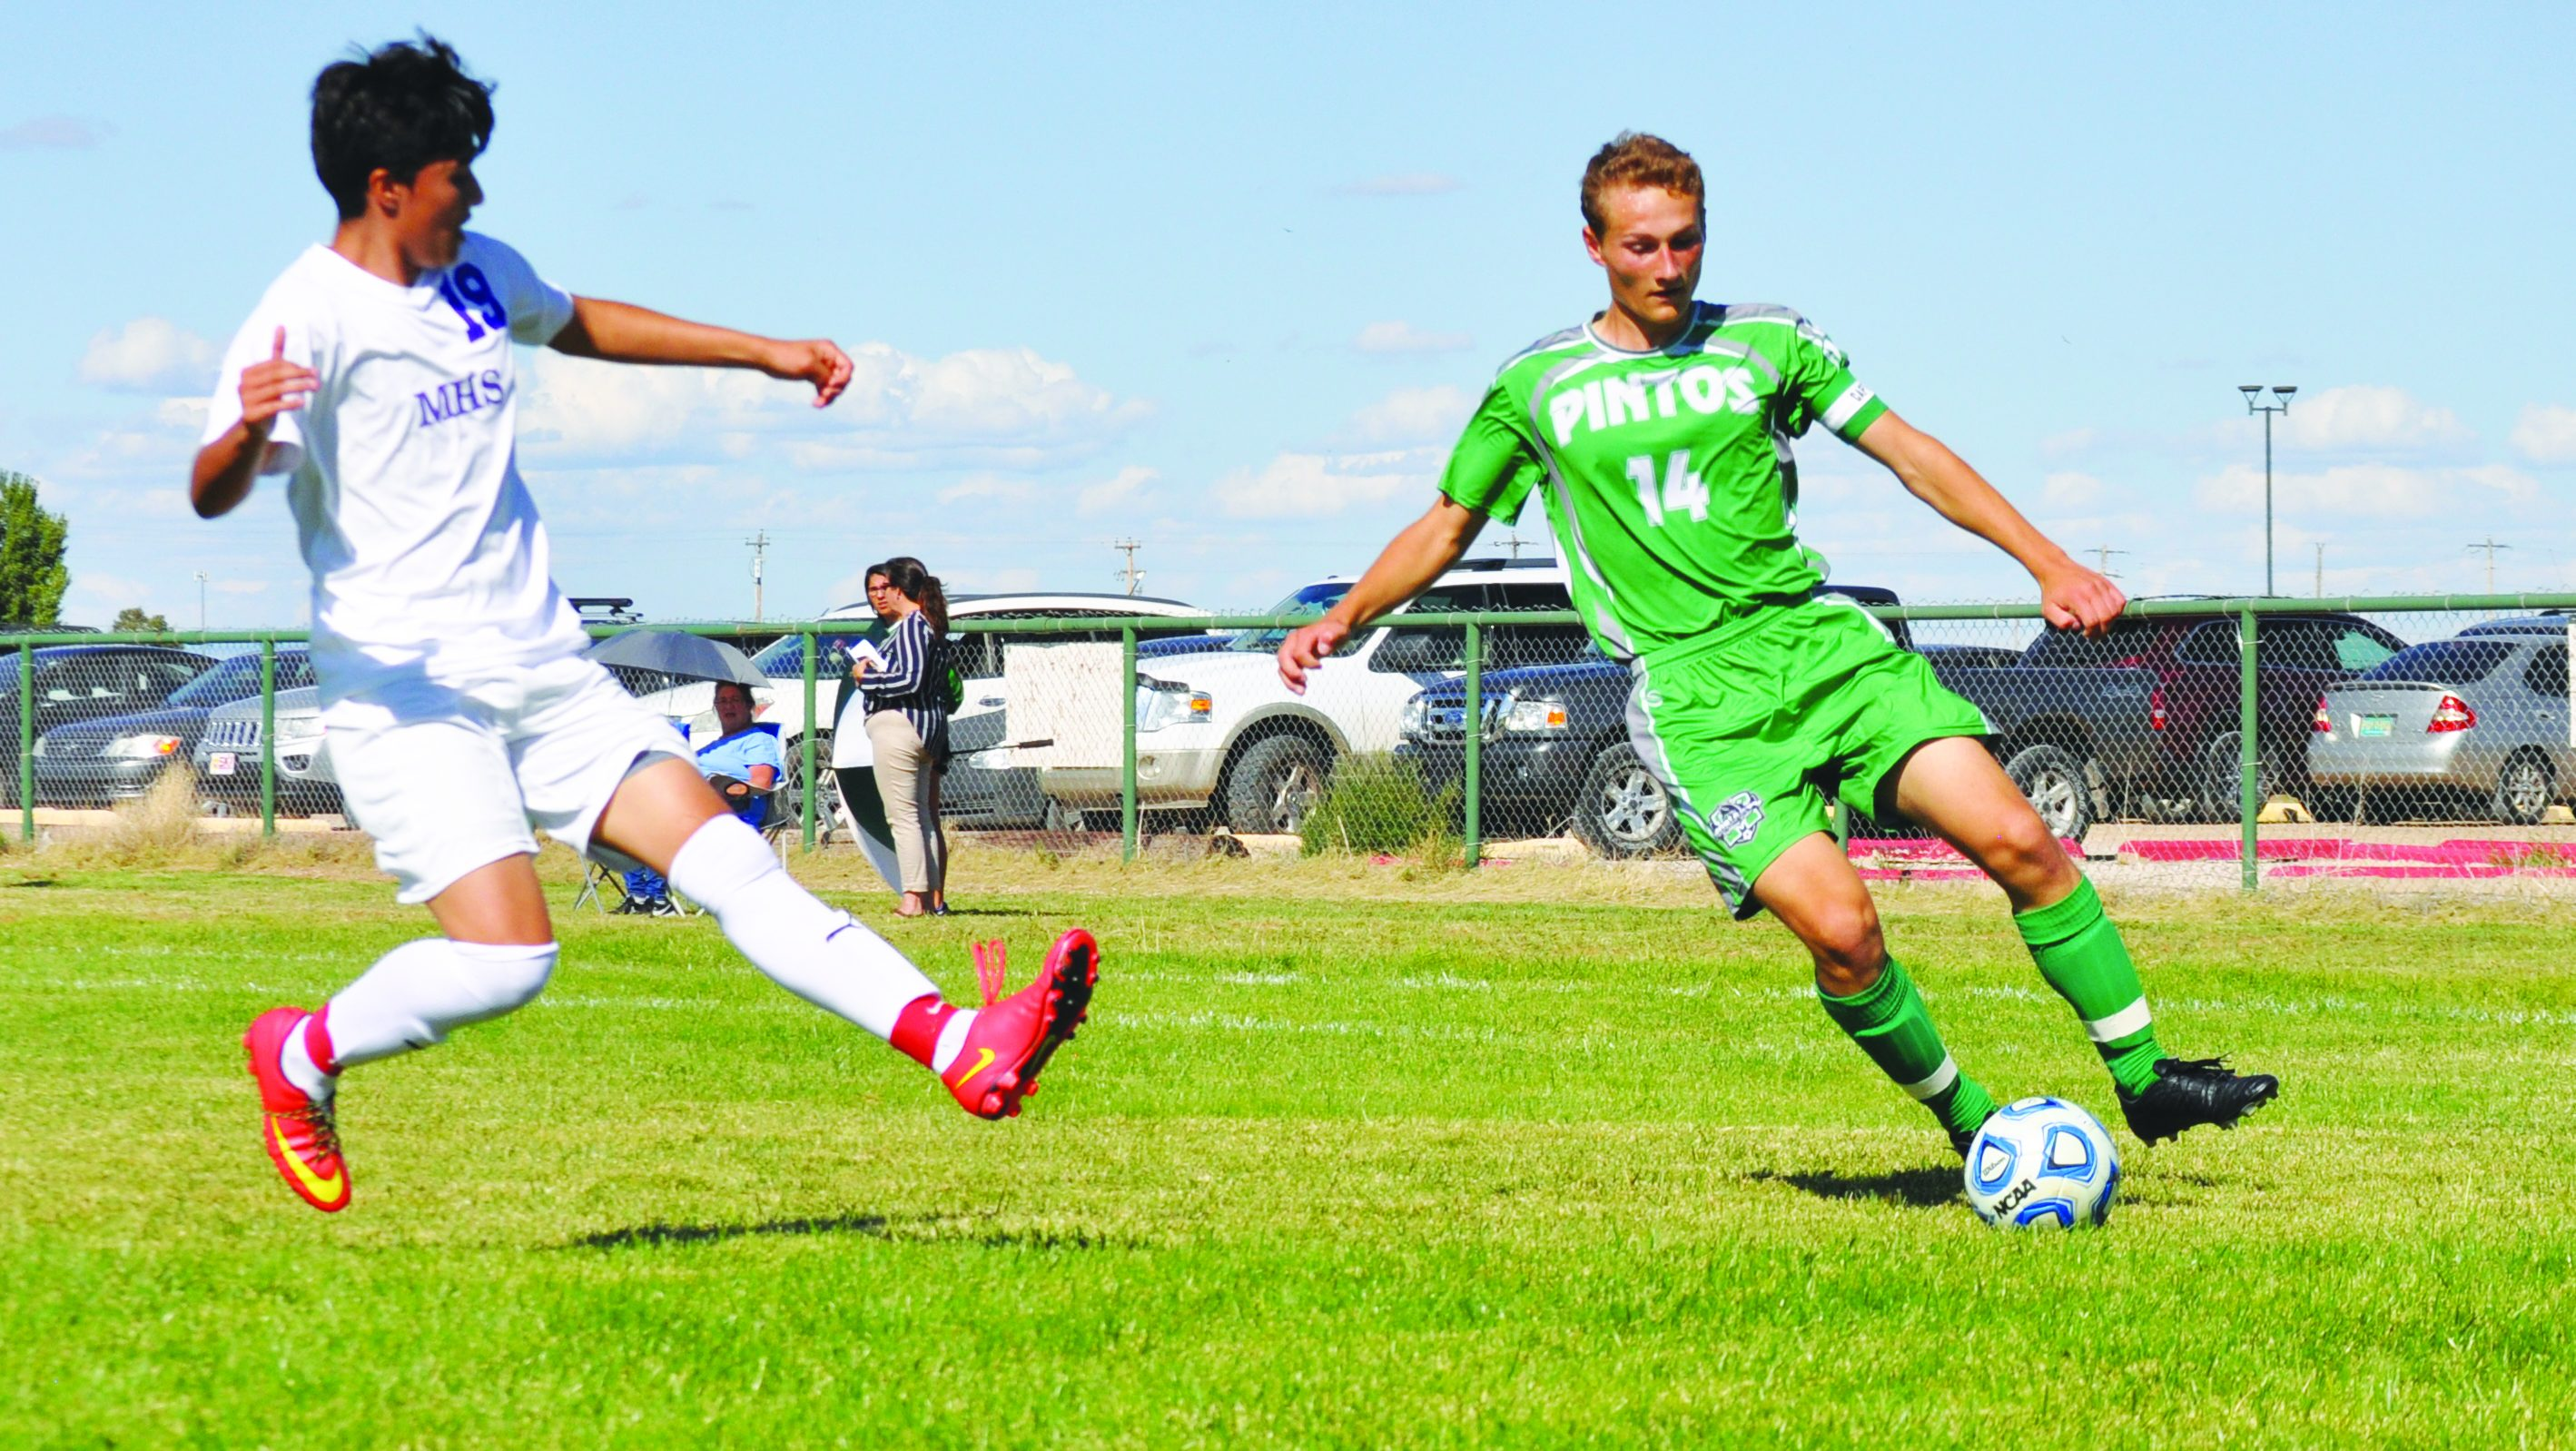 Two first half goals lift Pintos over Manzano